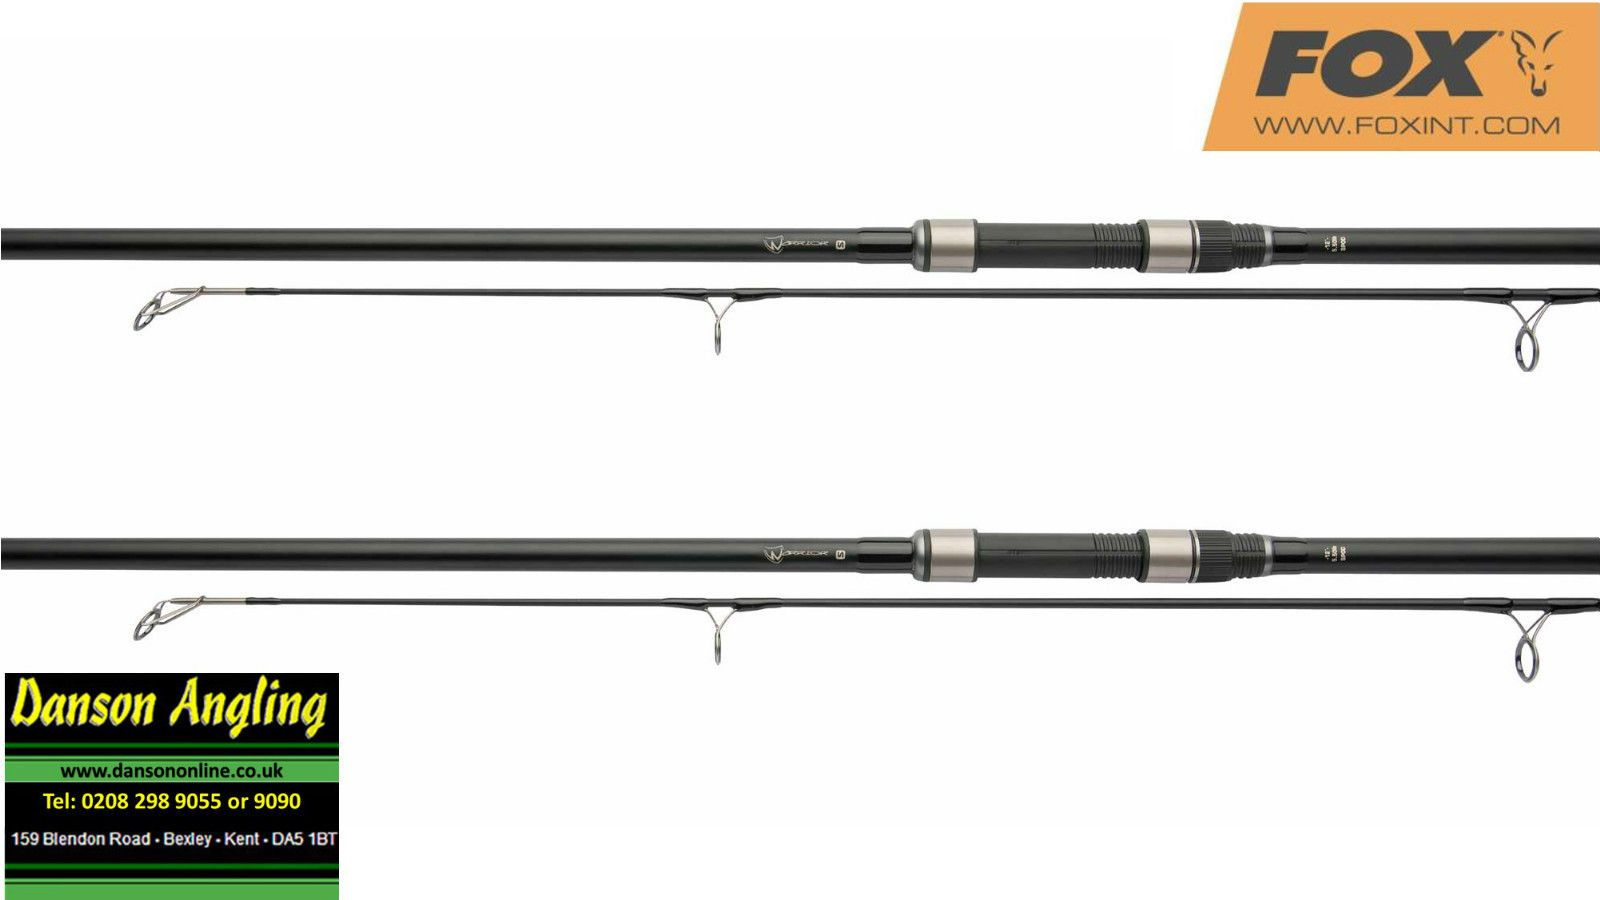 Carp Fishing Rod S Carp Fishing Rods Carp Fishing Carp Rods